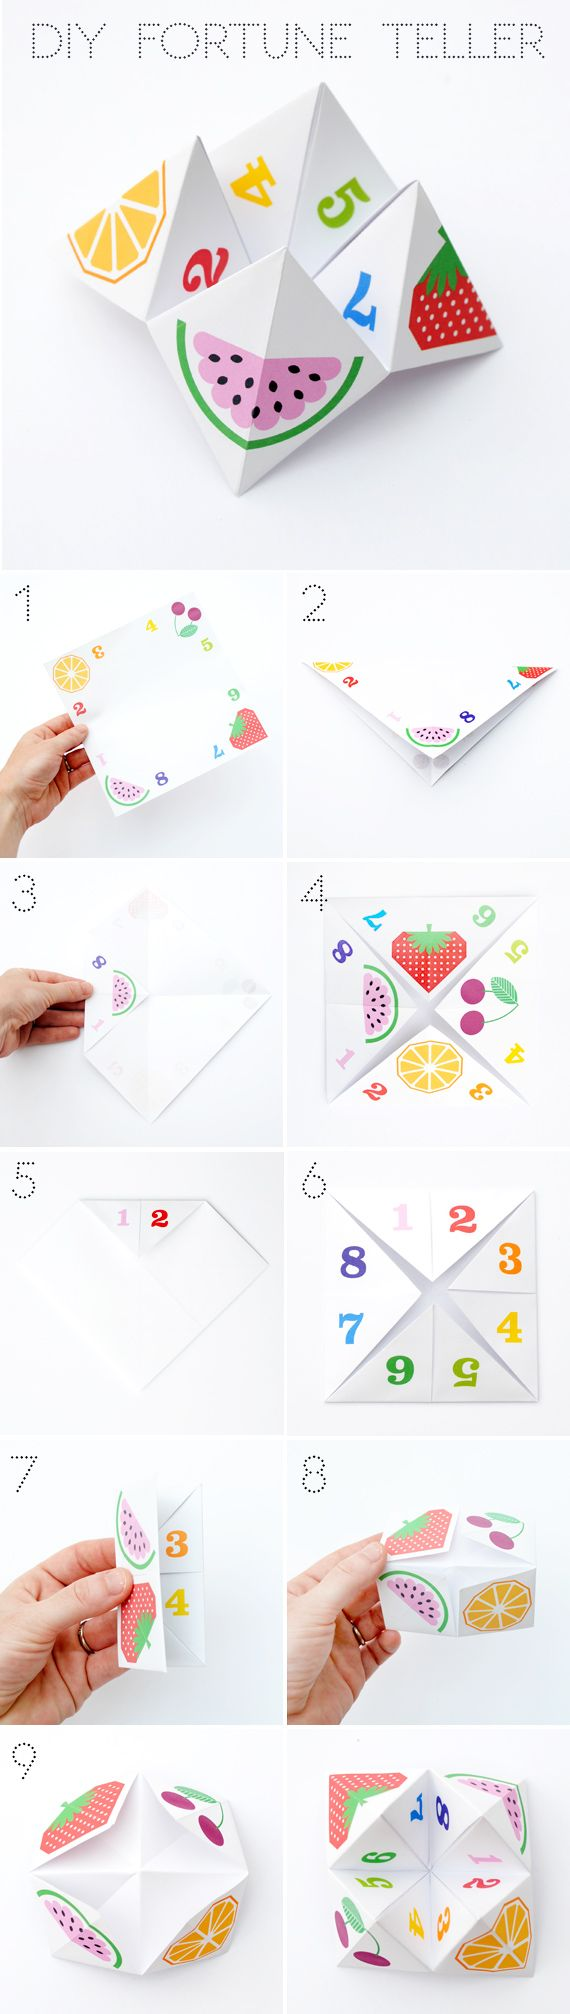 Remember these? Origami fortune teller (or chatterbox) from Minieco